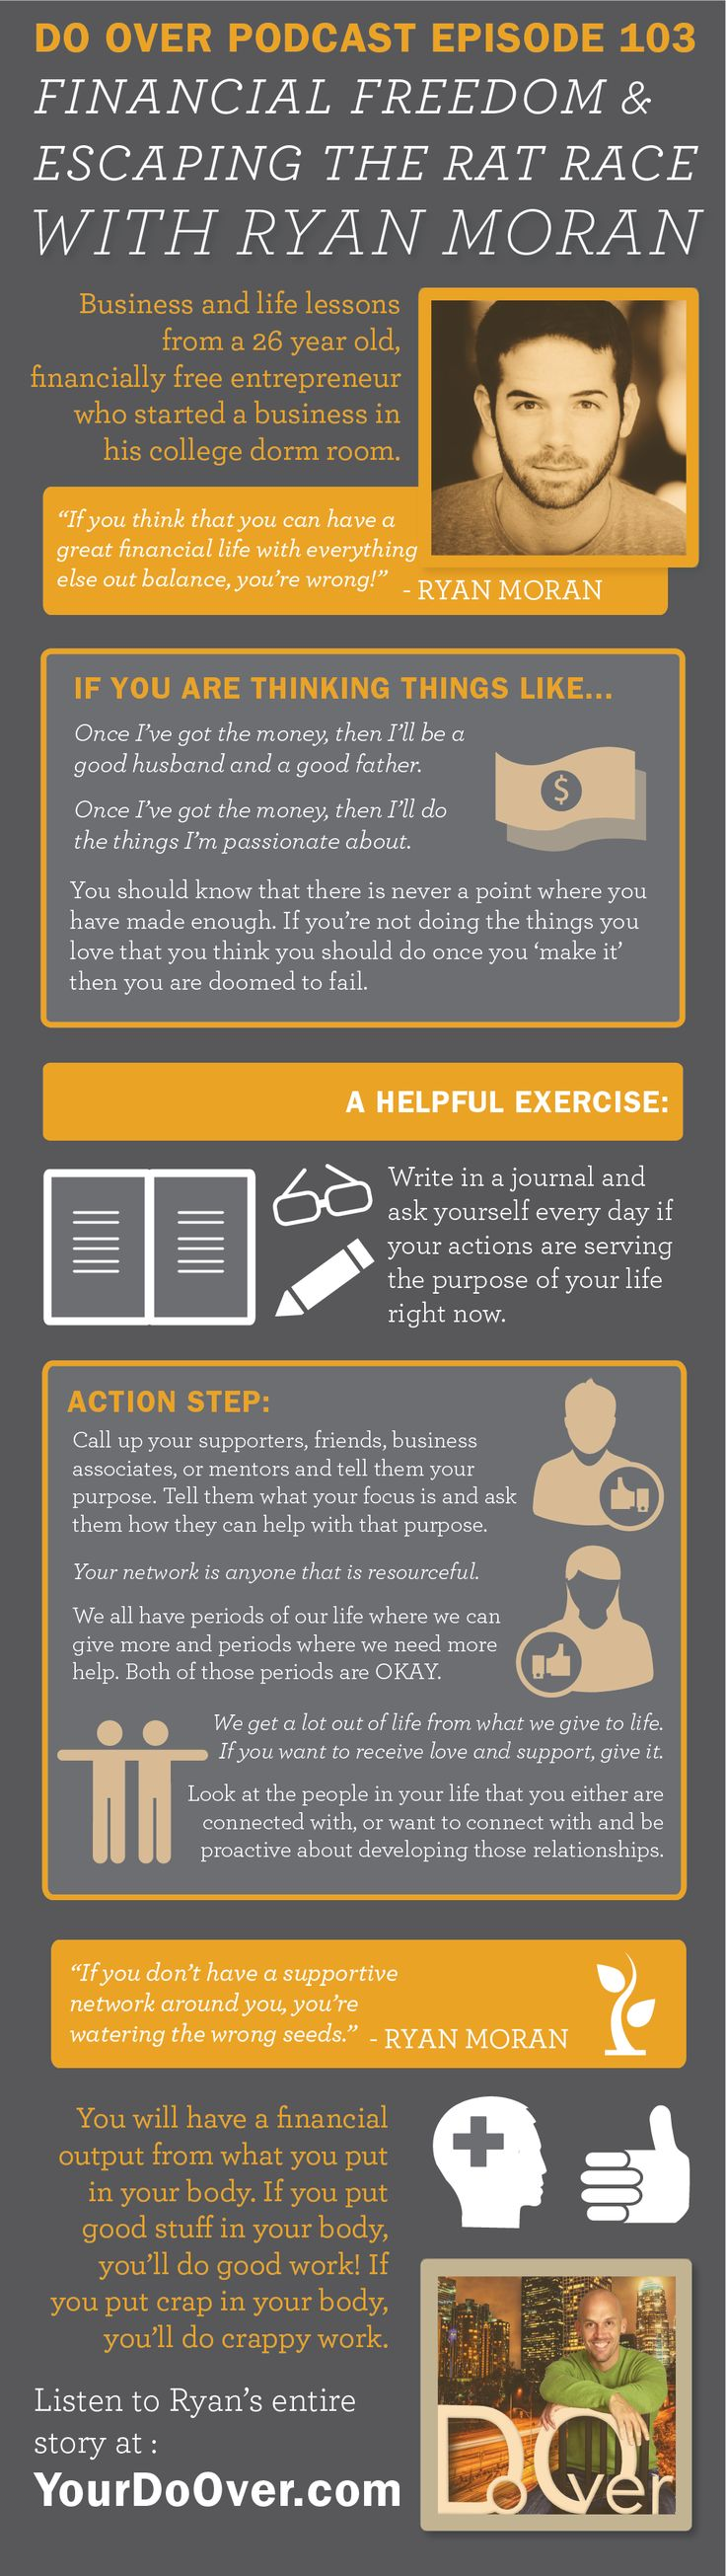 Ryan Moran and Do Overs #podcast http://thedooverguy.com/episode103/ #infographic #doover